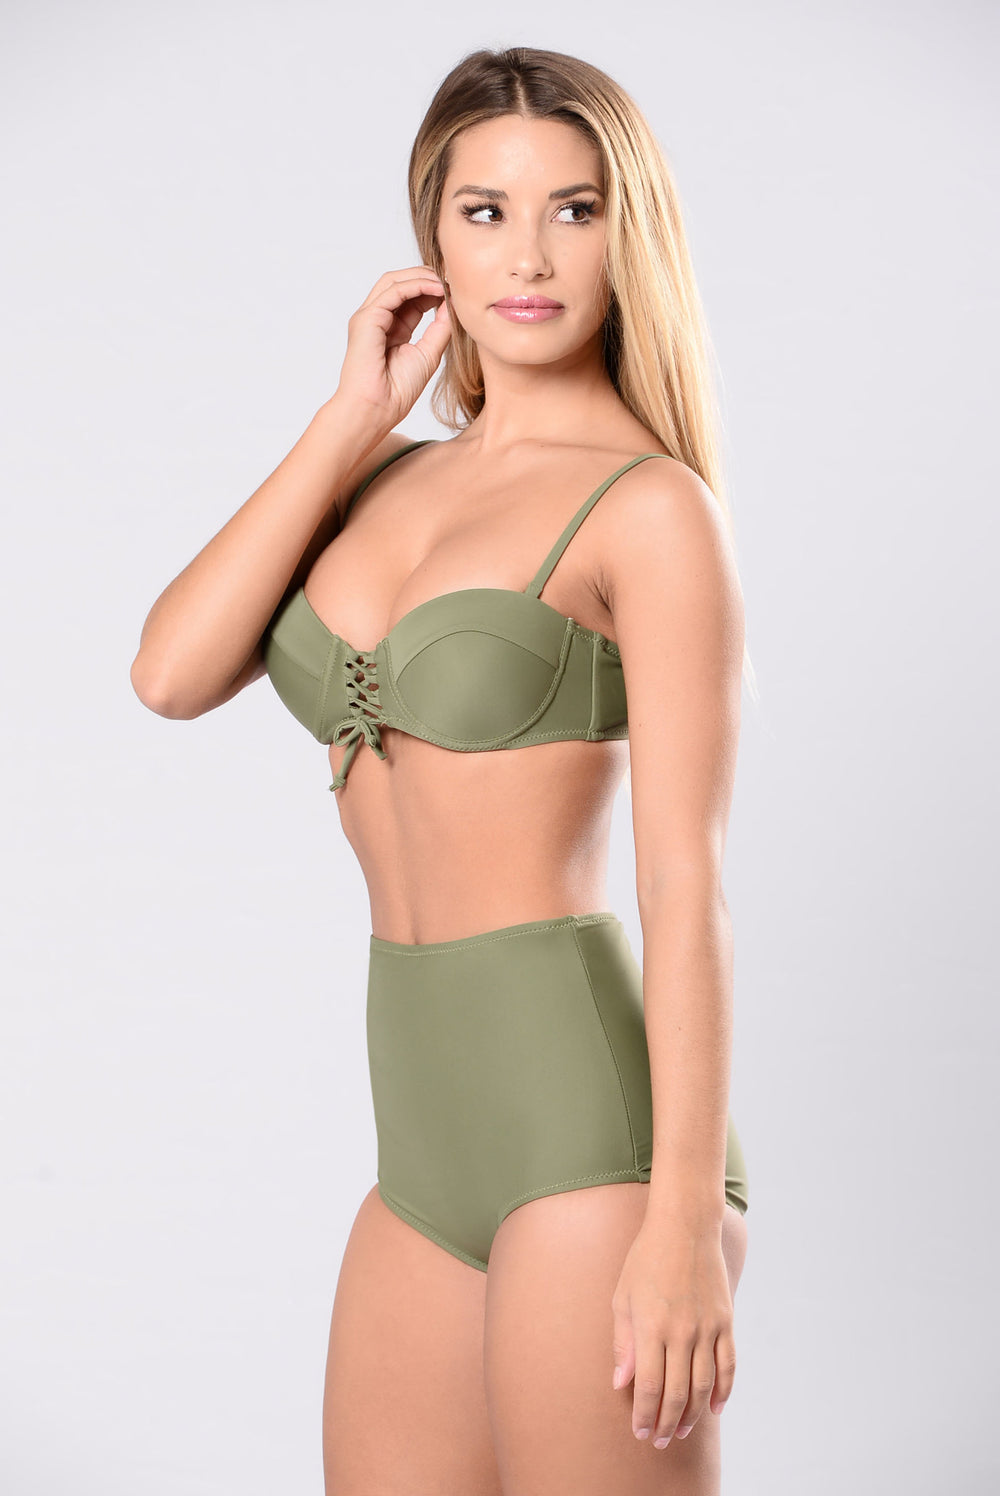 Go My Own Way Swimsuit - Olive